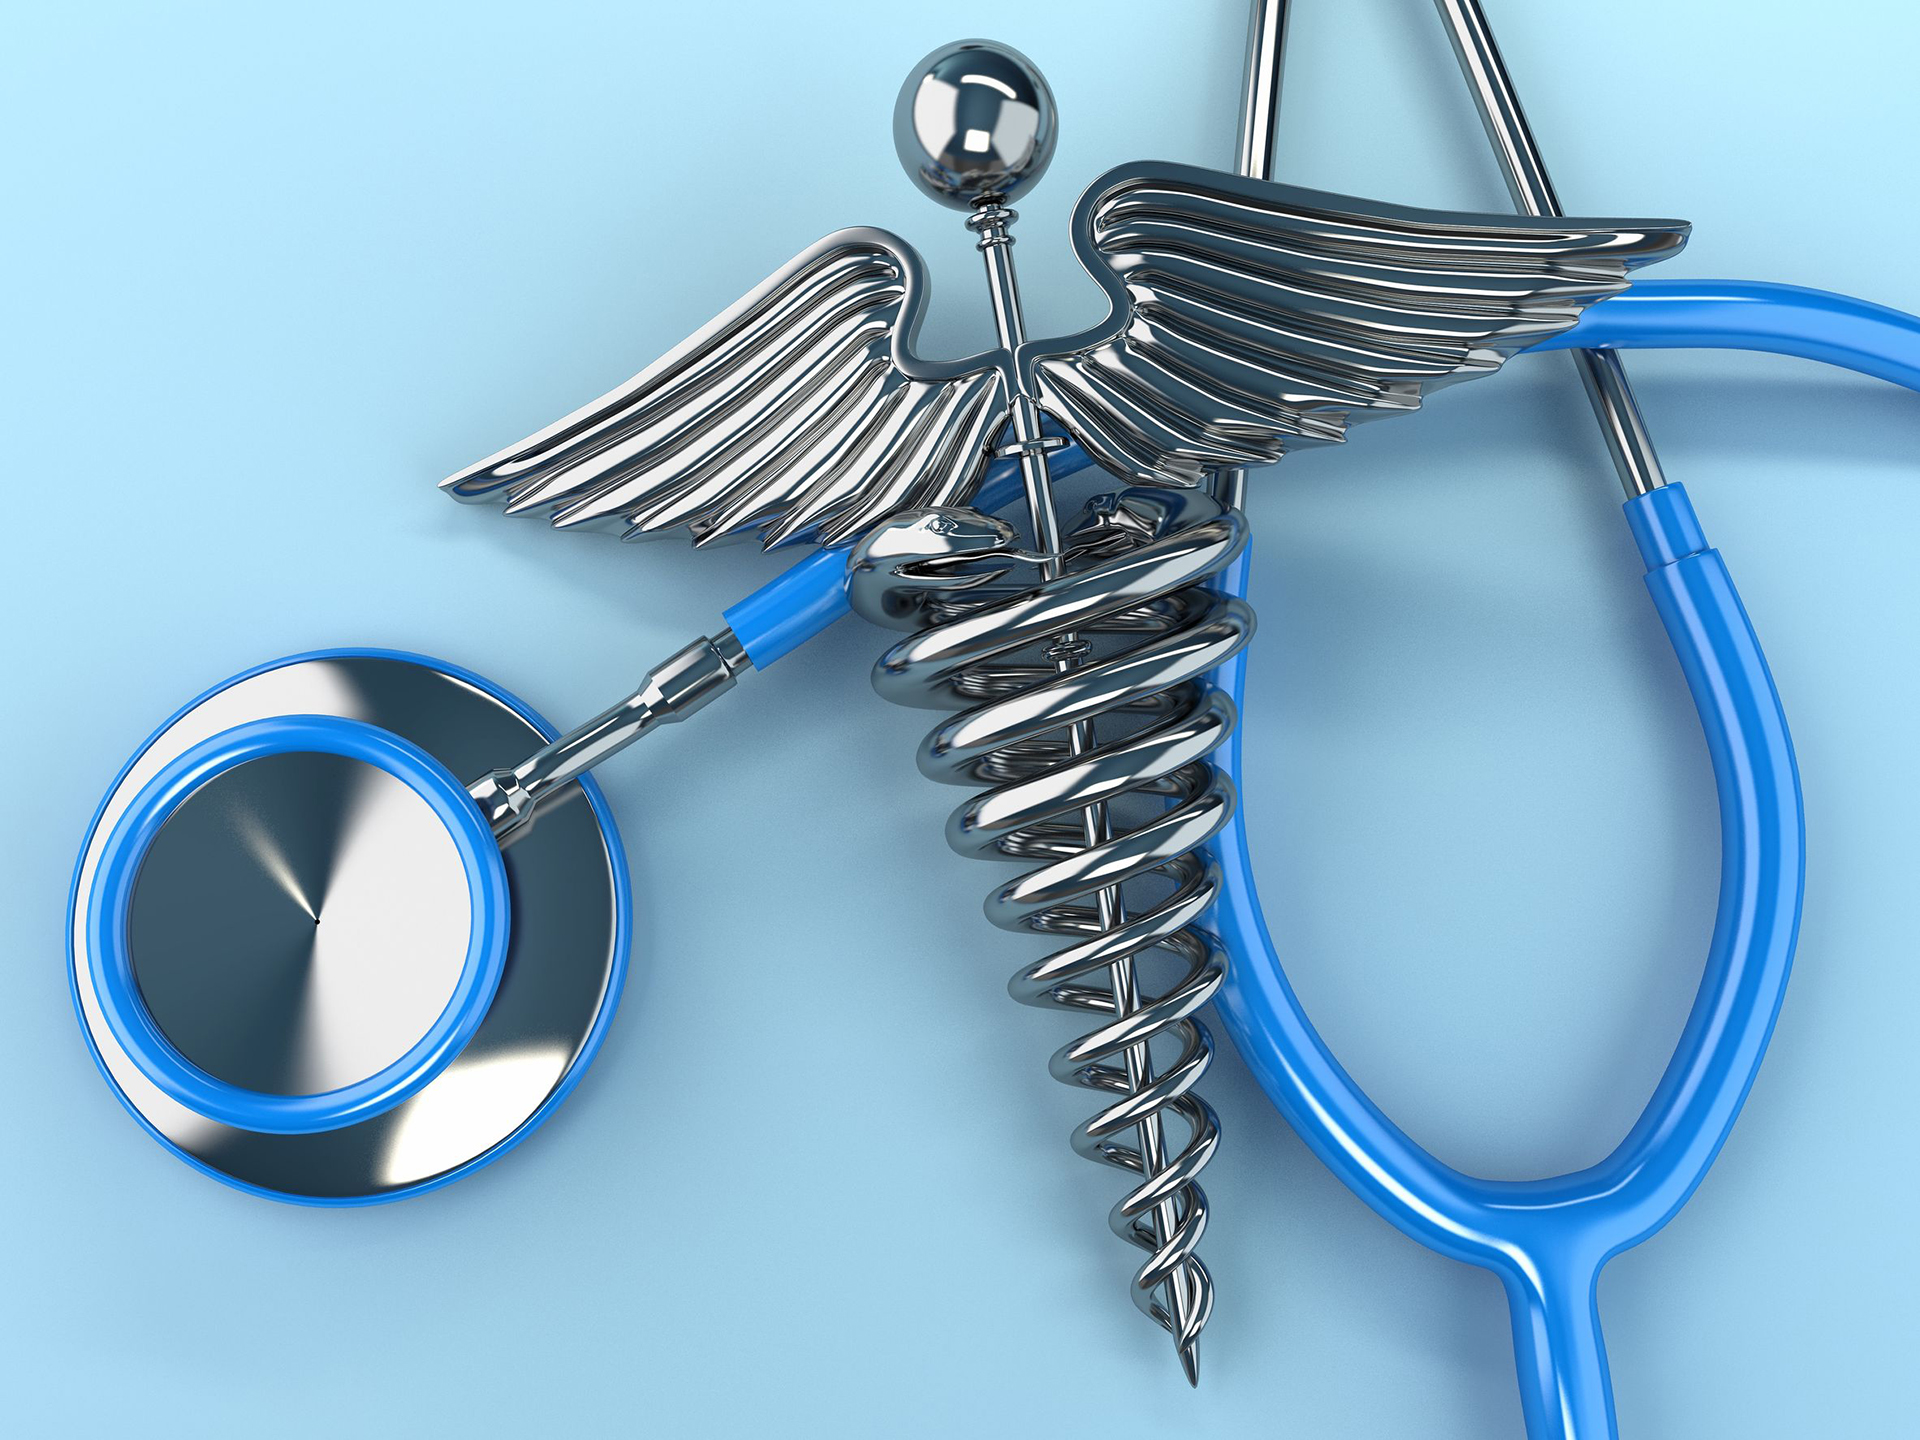 5 Stethoscope HD Wallpapers Backgrounds 1920x1440